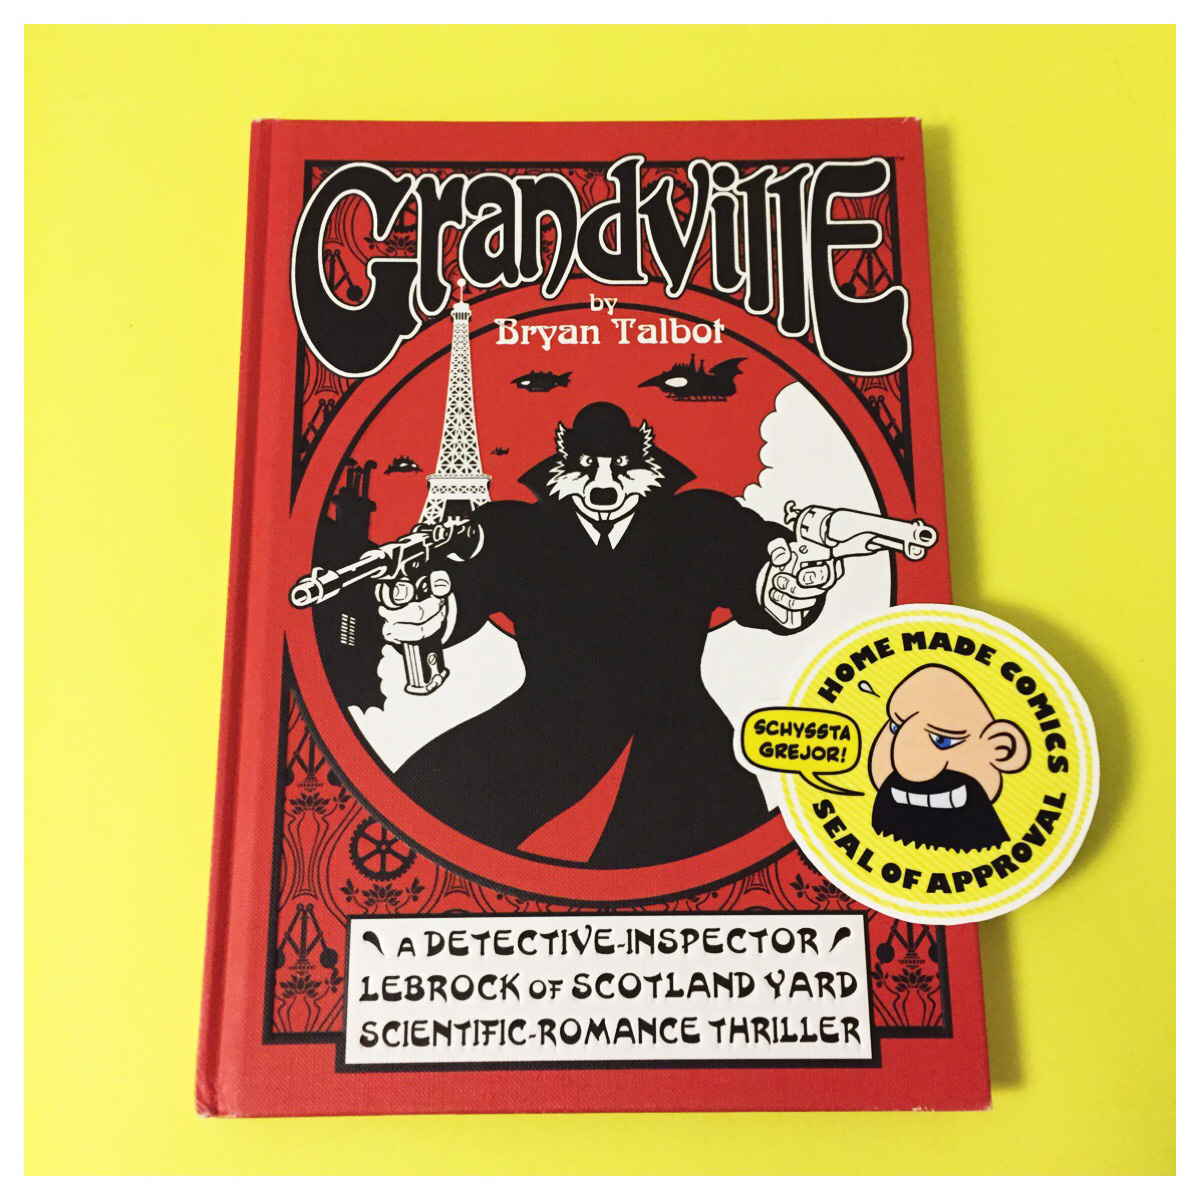 Home Made Comics Seal of Approval #171. Grandville av Bryan Talbot utgiven av Dark Horse Comics 2009.